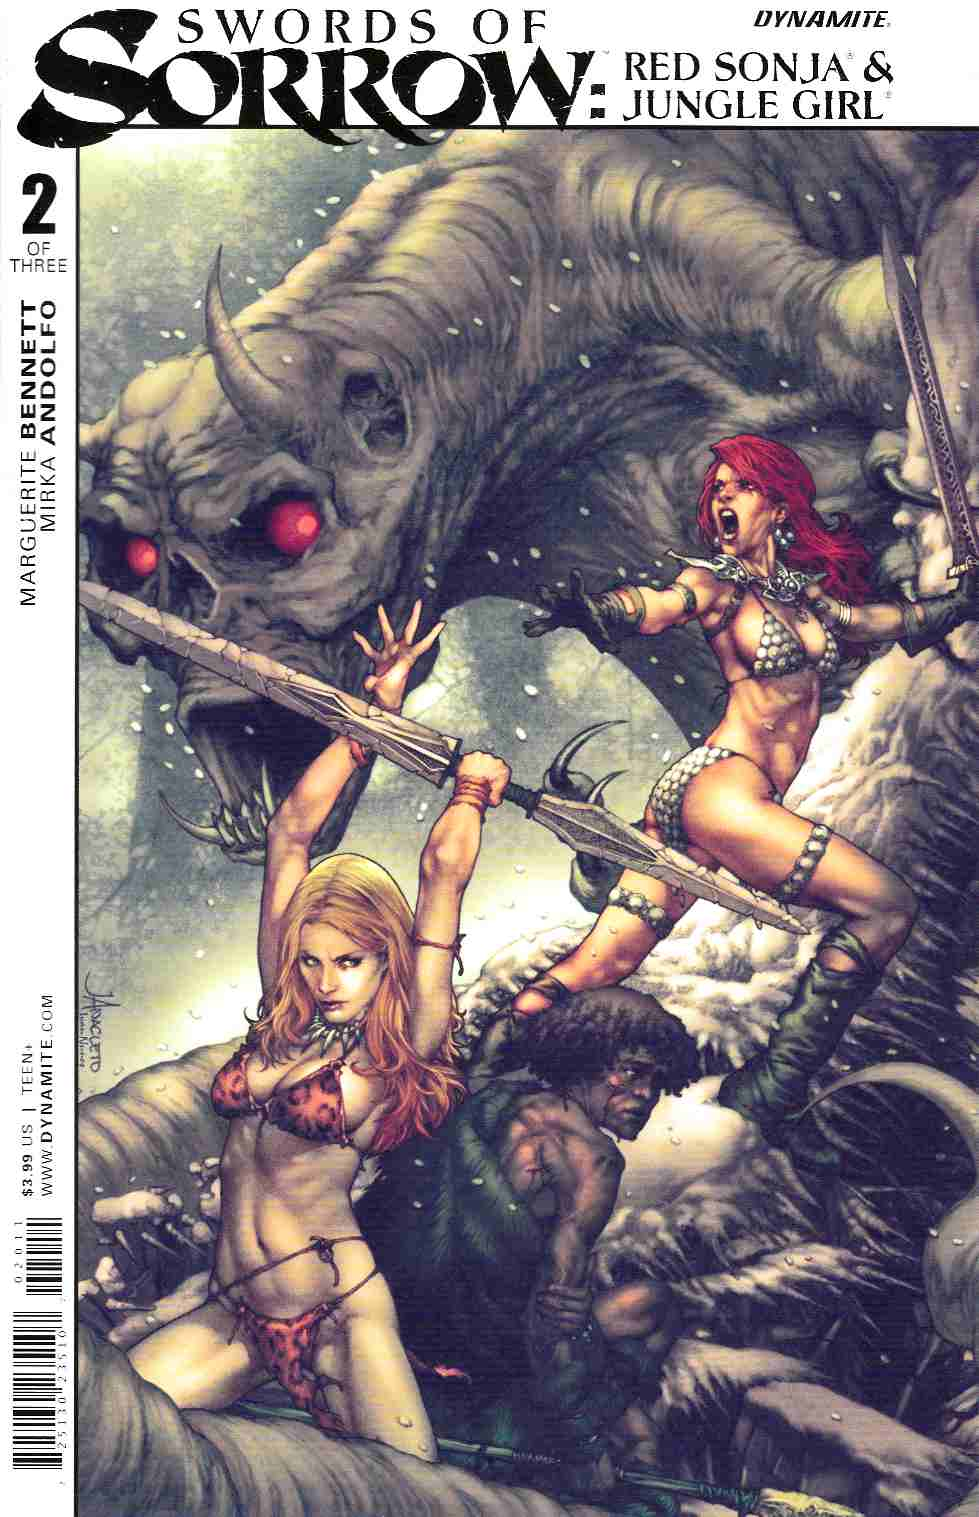 Swords of Sorrow Red Sonja and Jungle Girl #2 [Dynamite Comic] THUMBNAIL